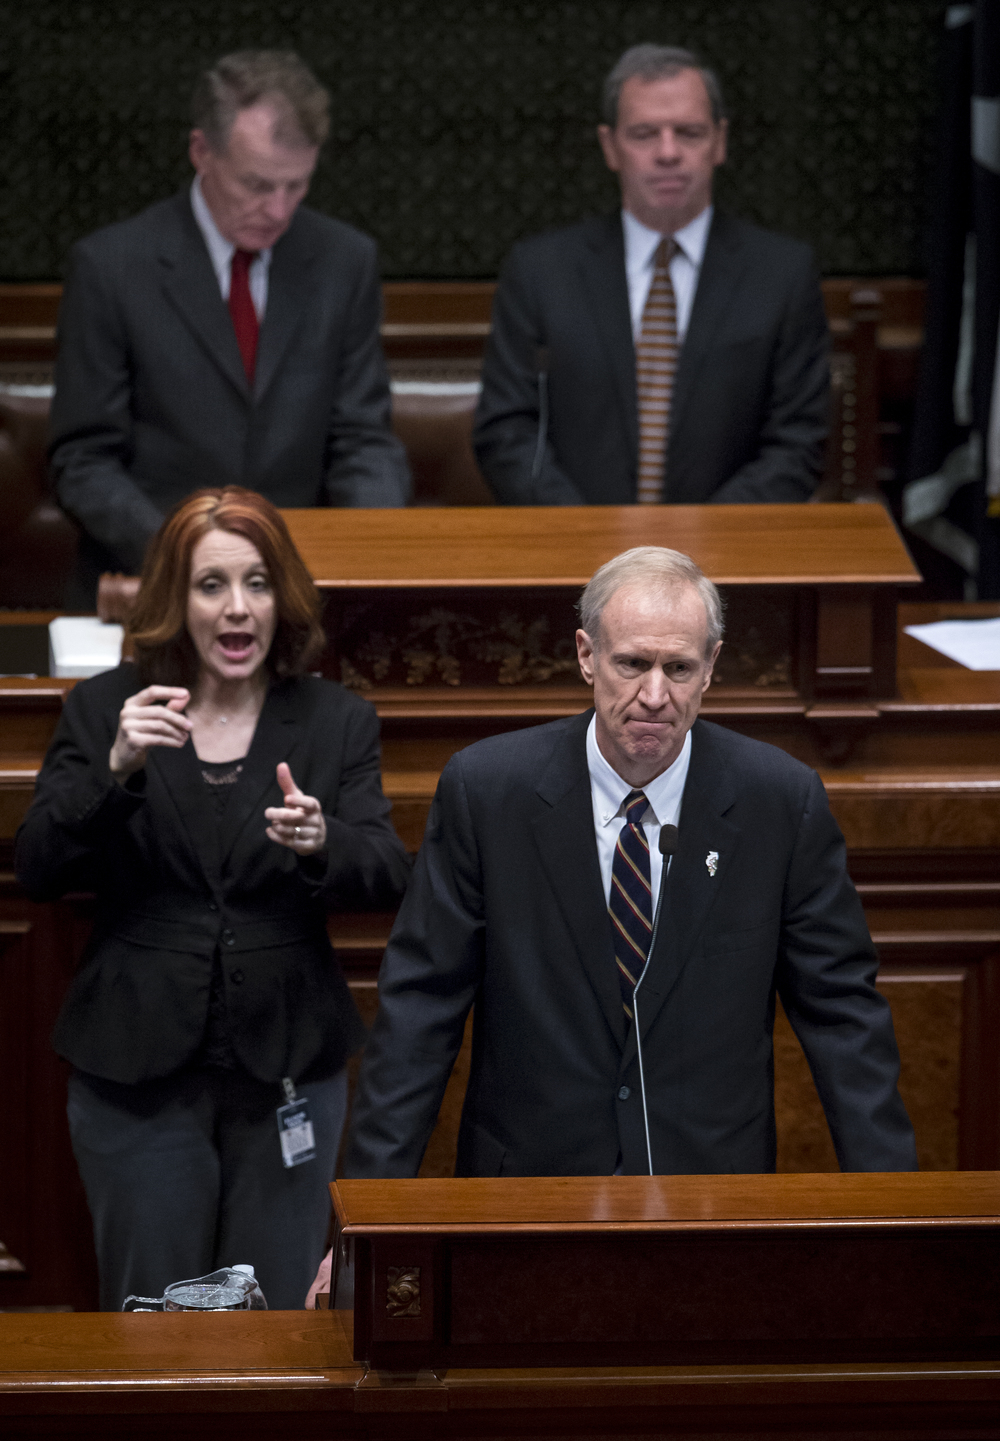 Illinois Gov. Bruce Rauner delivers his State of the State address to a joint session of the General Assembly in the House chambers at the Illinois State Capitol, Wednesday, Jan. 27, 2016, in Springfield, Ill. Justin L. Fowler/The State Journal-Register